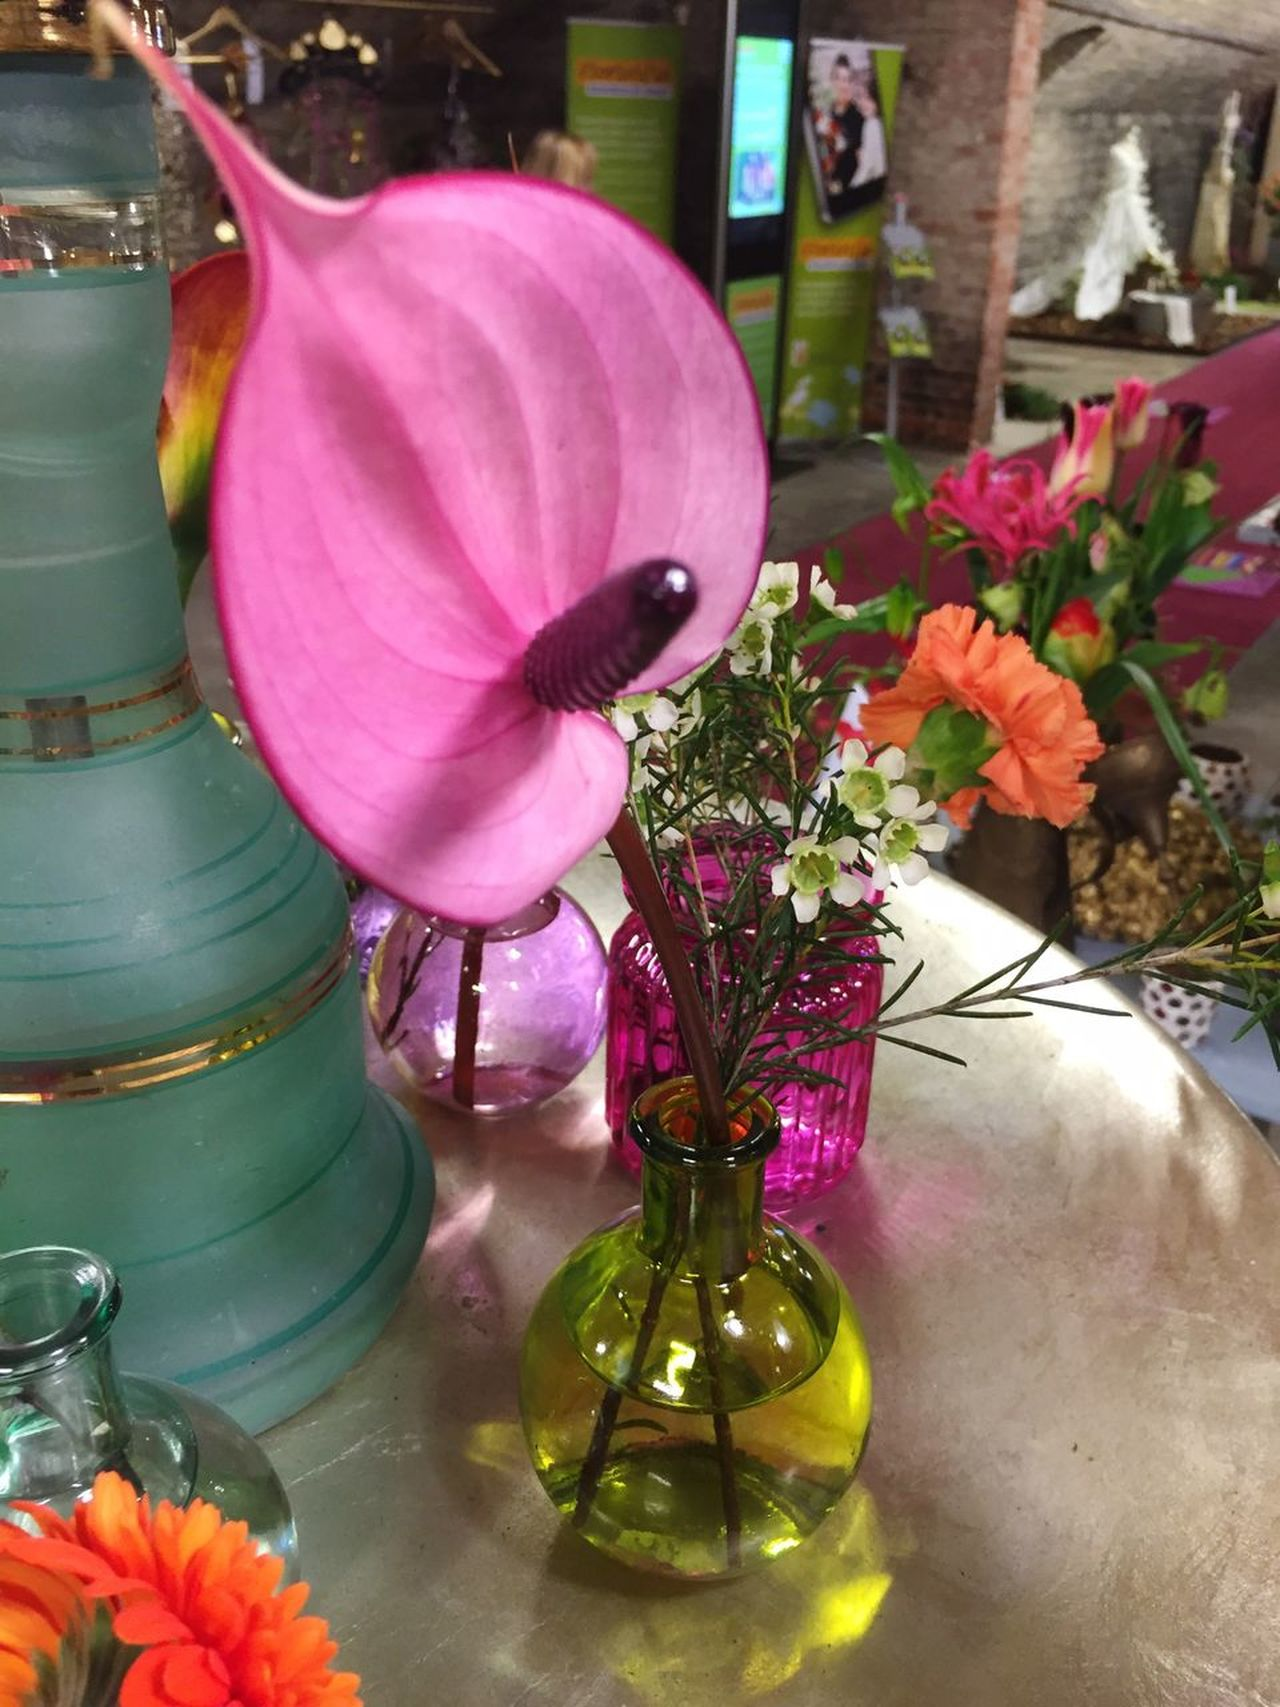 Pink flower decoration in a glass vase Flower Pink Color Petal Plant Purple Flower Head Fragility Nature Freshness Growth No People Blooming Flower Arrangement Beauty In Nature Close-up Indoors  Day glass vase